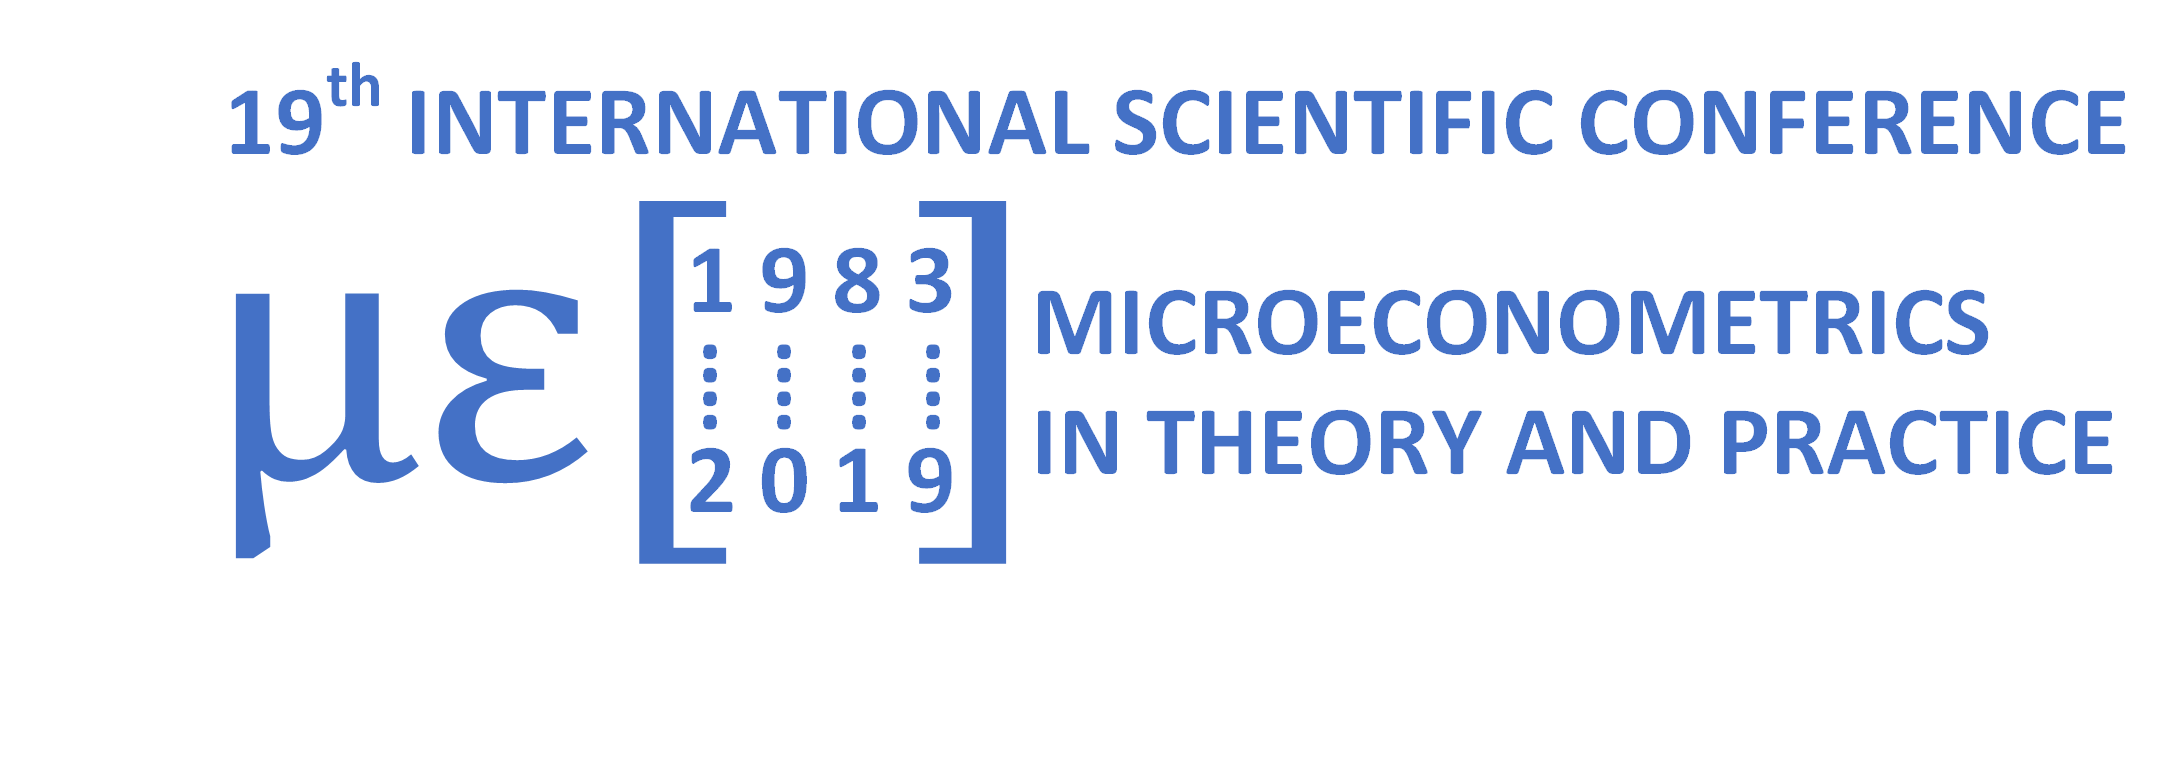 Microeconometrics in Theory and Practice conference page